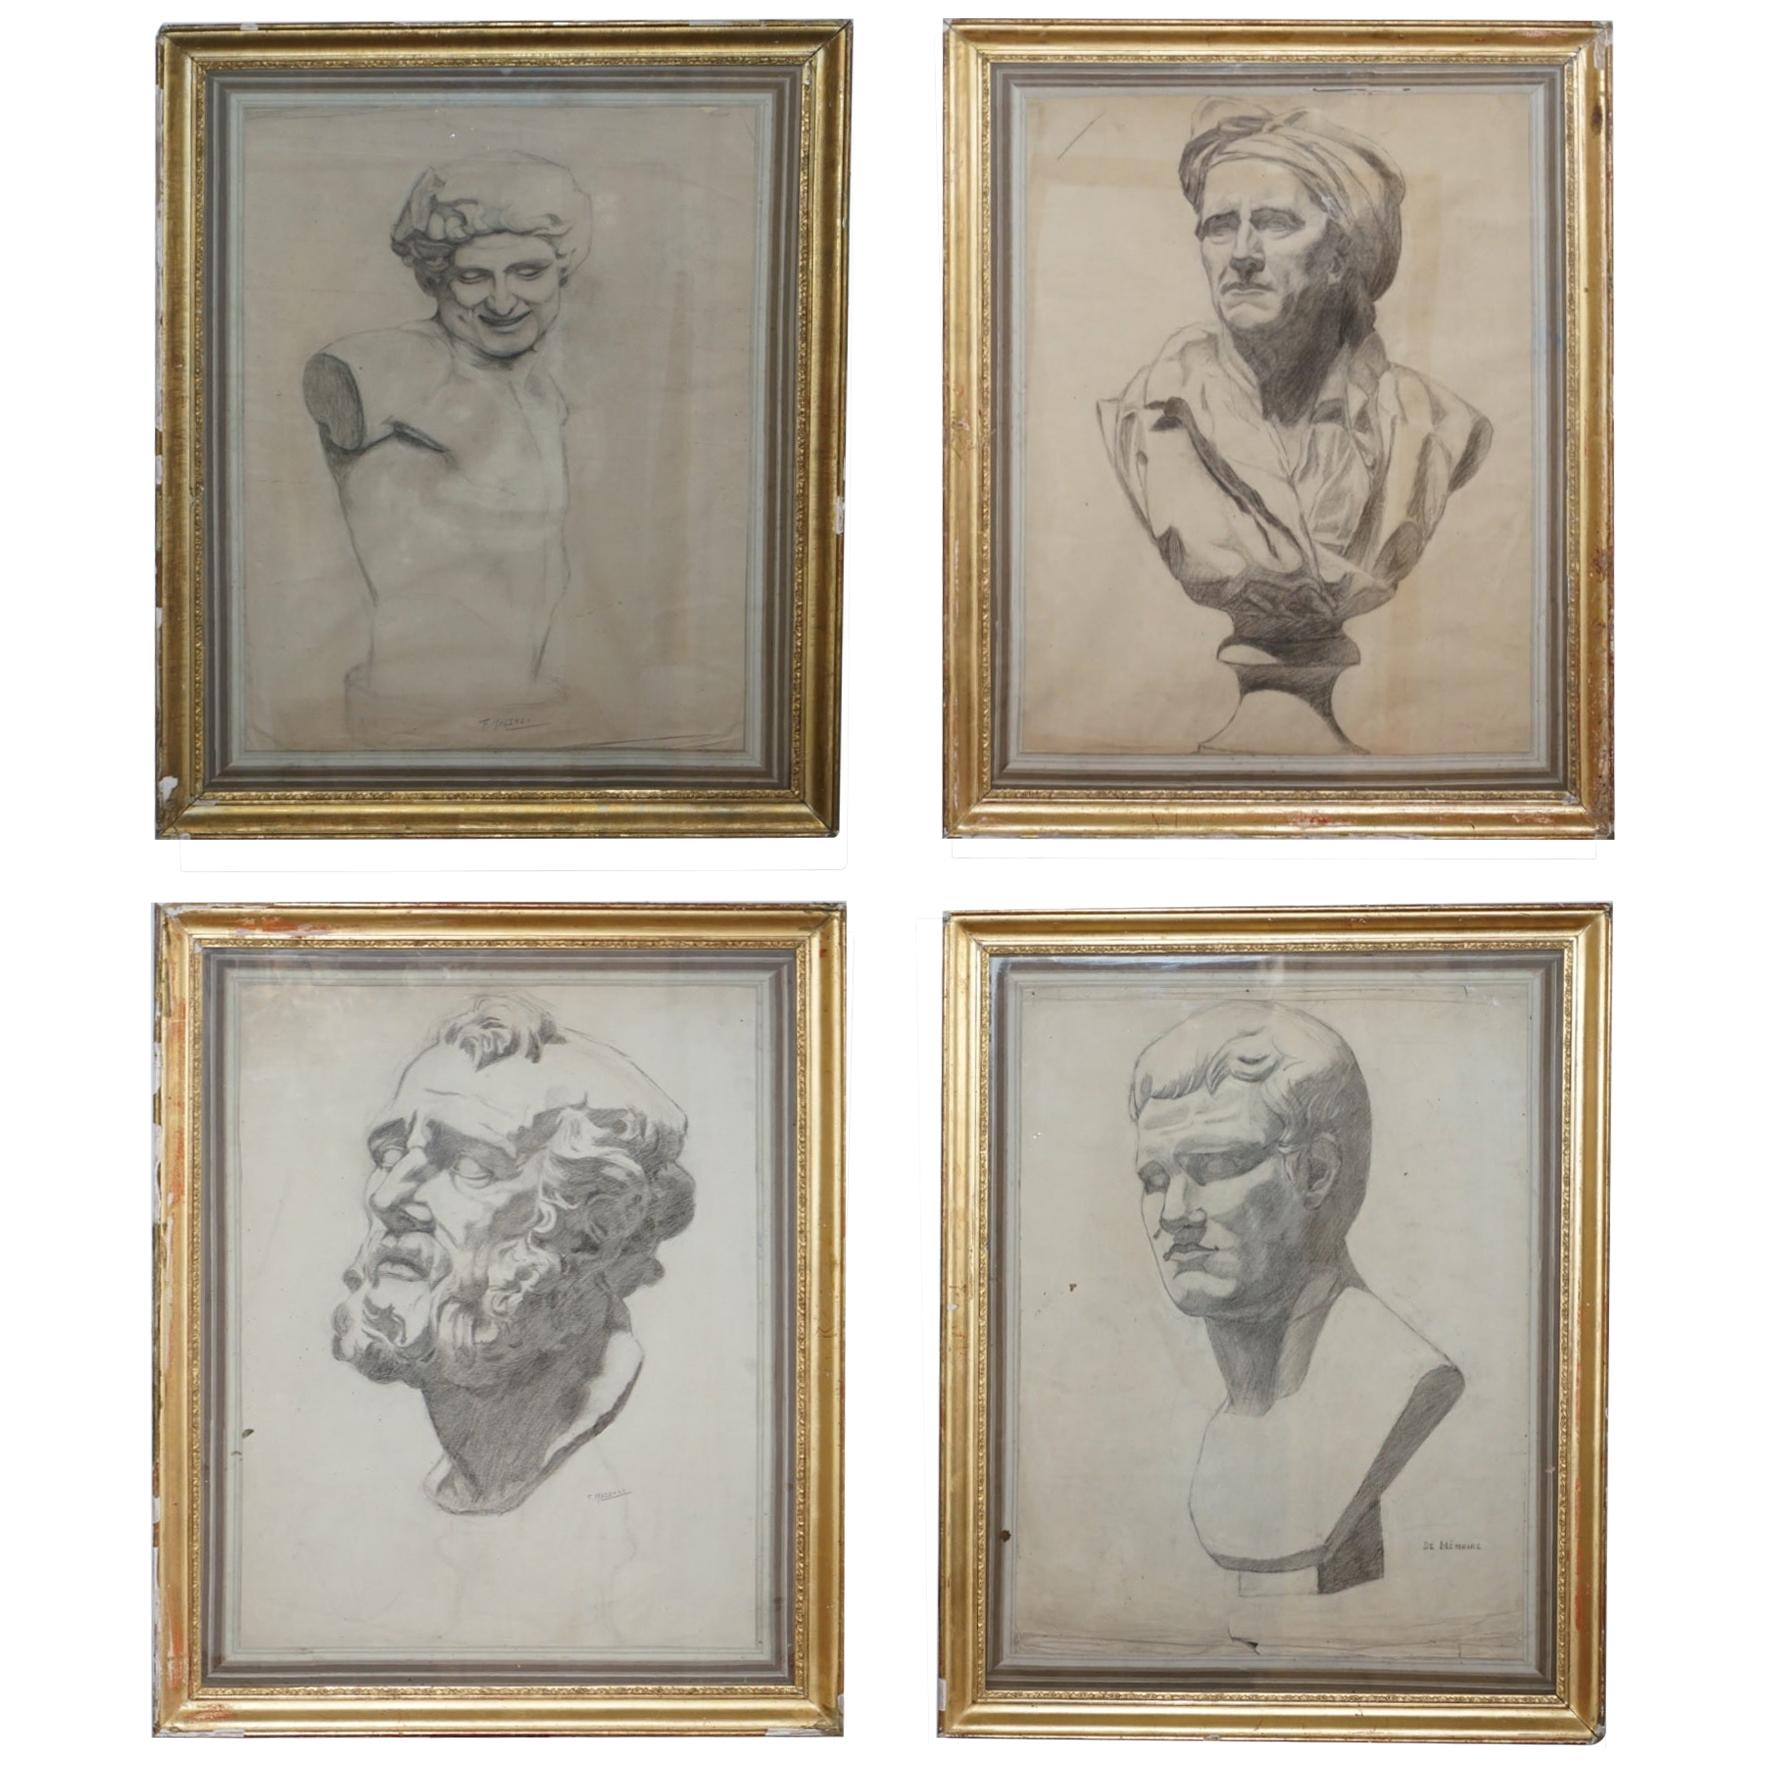 Four Rare Italian School 19th Century Old Master Sketches Drawings by F Mazzoli